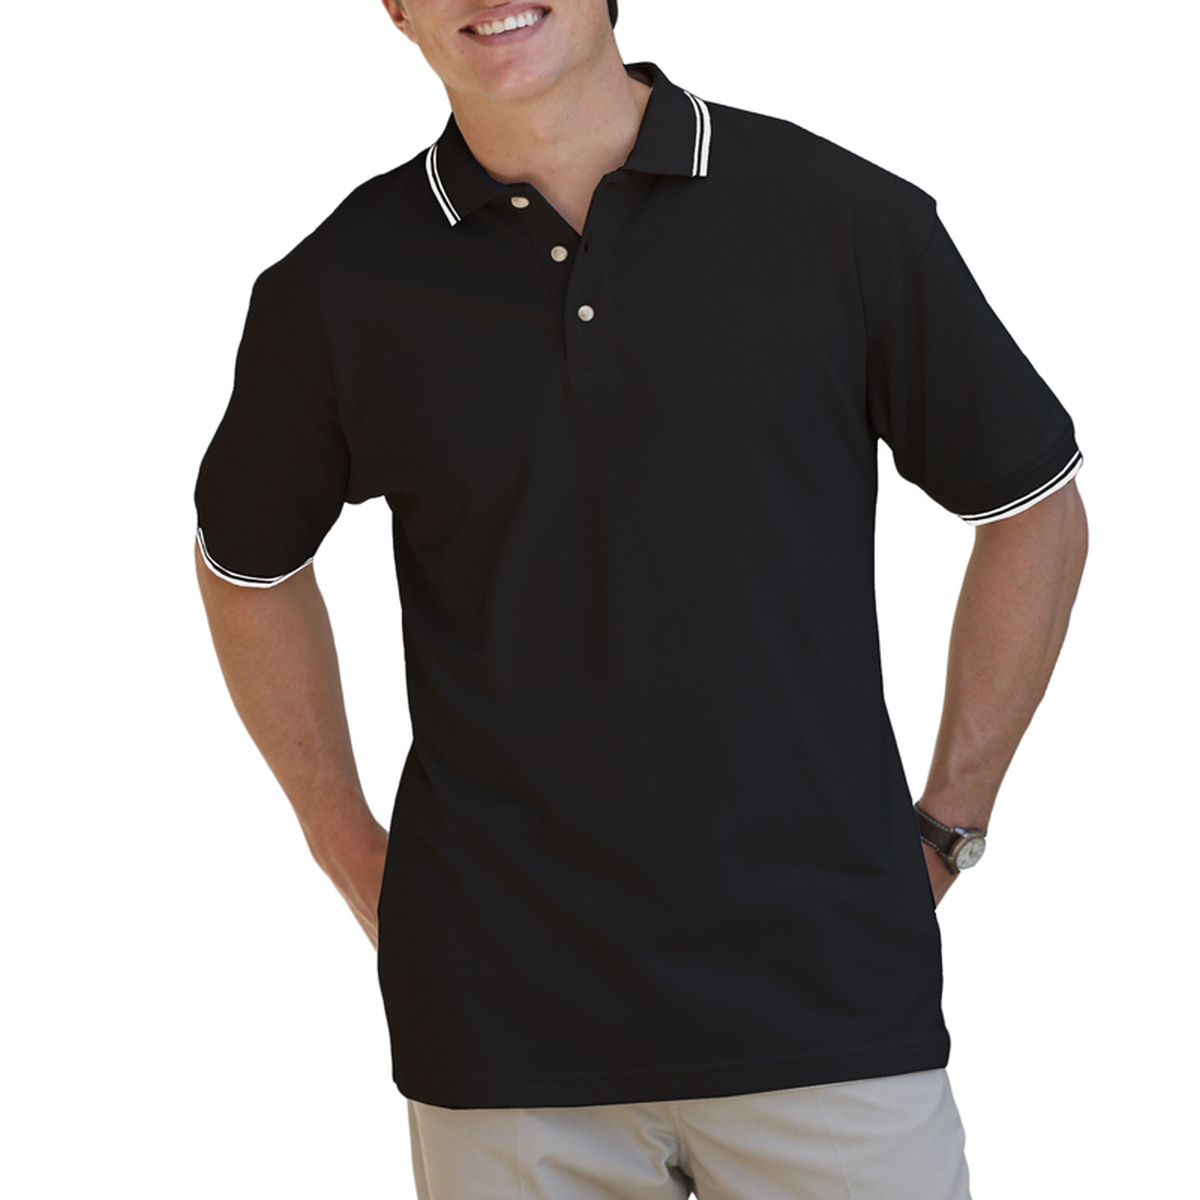 ad24d9ea7 MENS SHORT SLEEVE TIPPED COLLAR   CUFF PIQUES - BLACK 2 EXTRA LARGE TIPPED  WHITE-